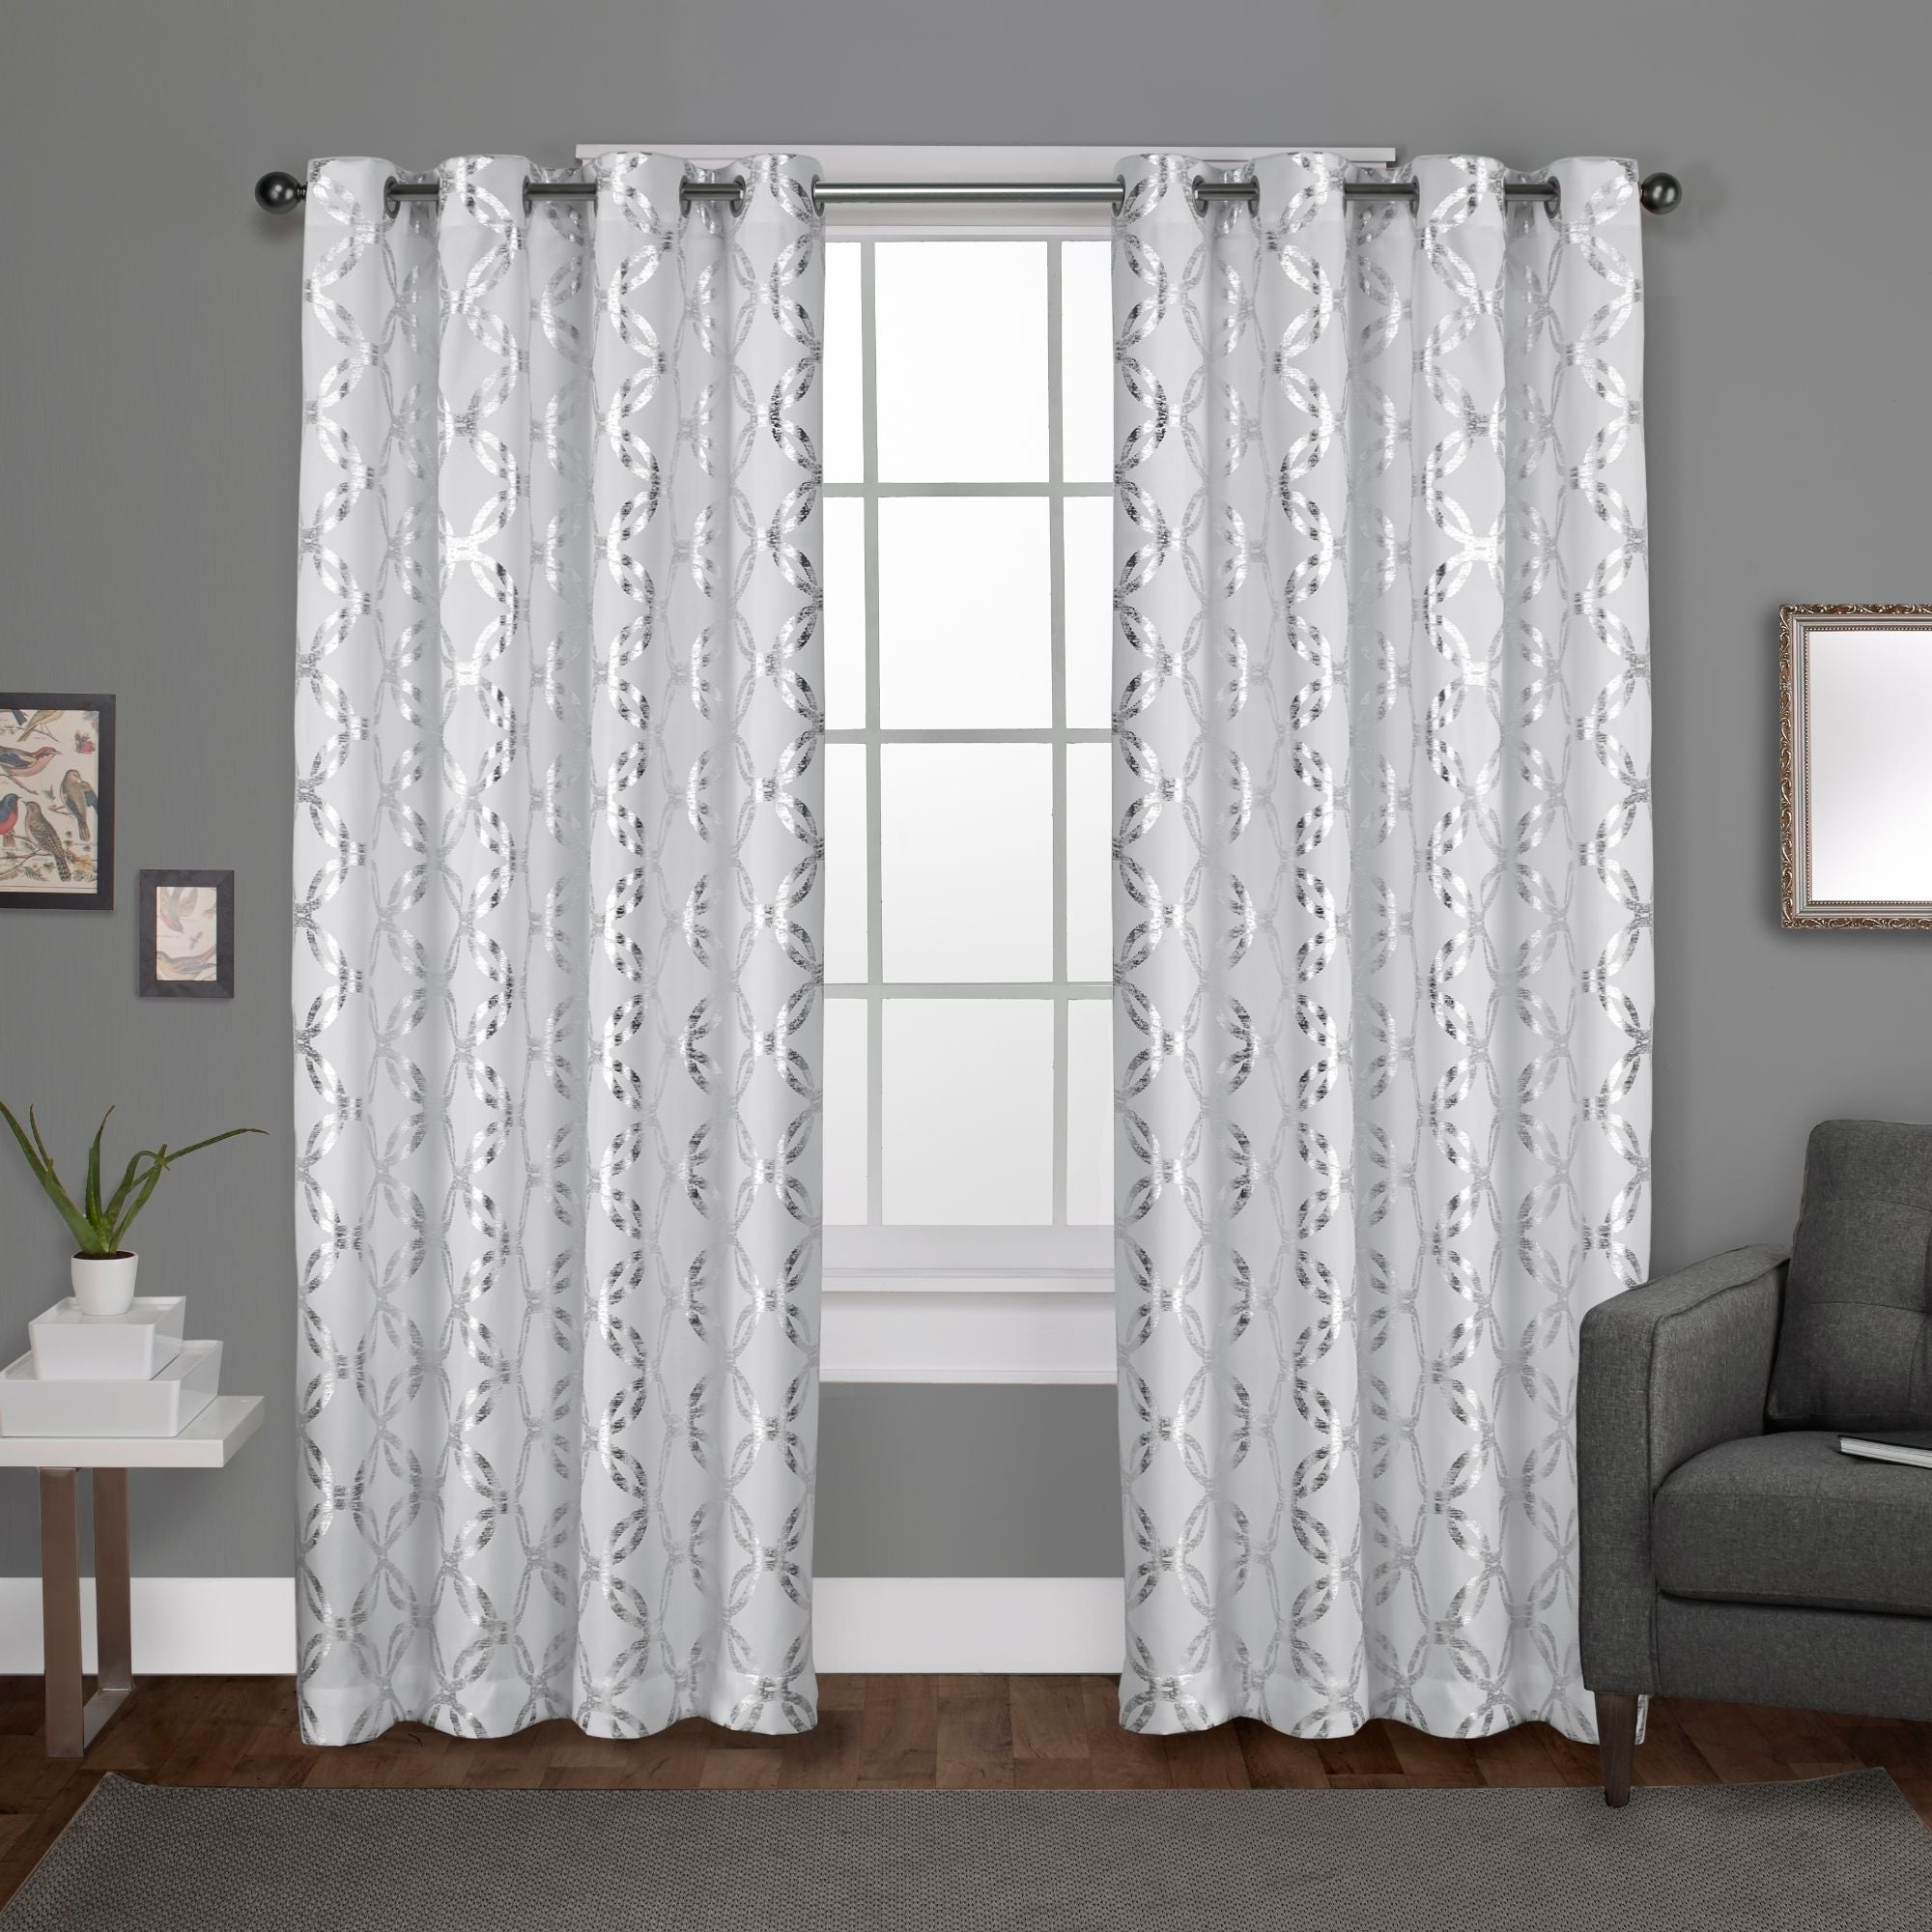 Preferred The Curated Nomad Sloat Metallic Geometric Grommet Top Curtain Panel Pair Intended For The Curated Nomad Duane Jacquard Grommet Top Curtain Panel Pairs (View 16 of 21)